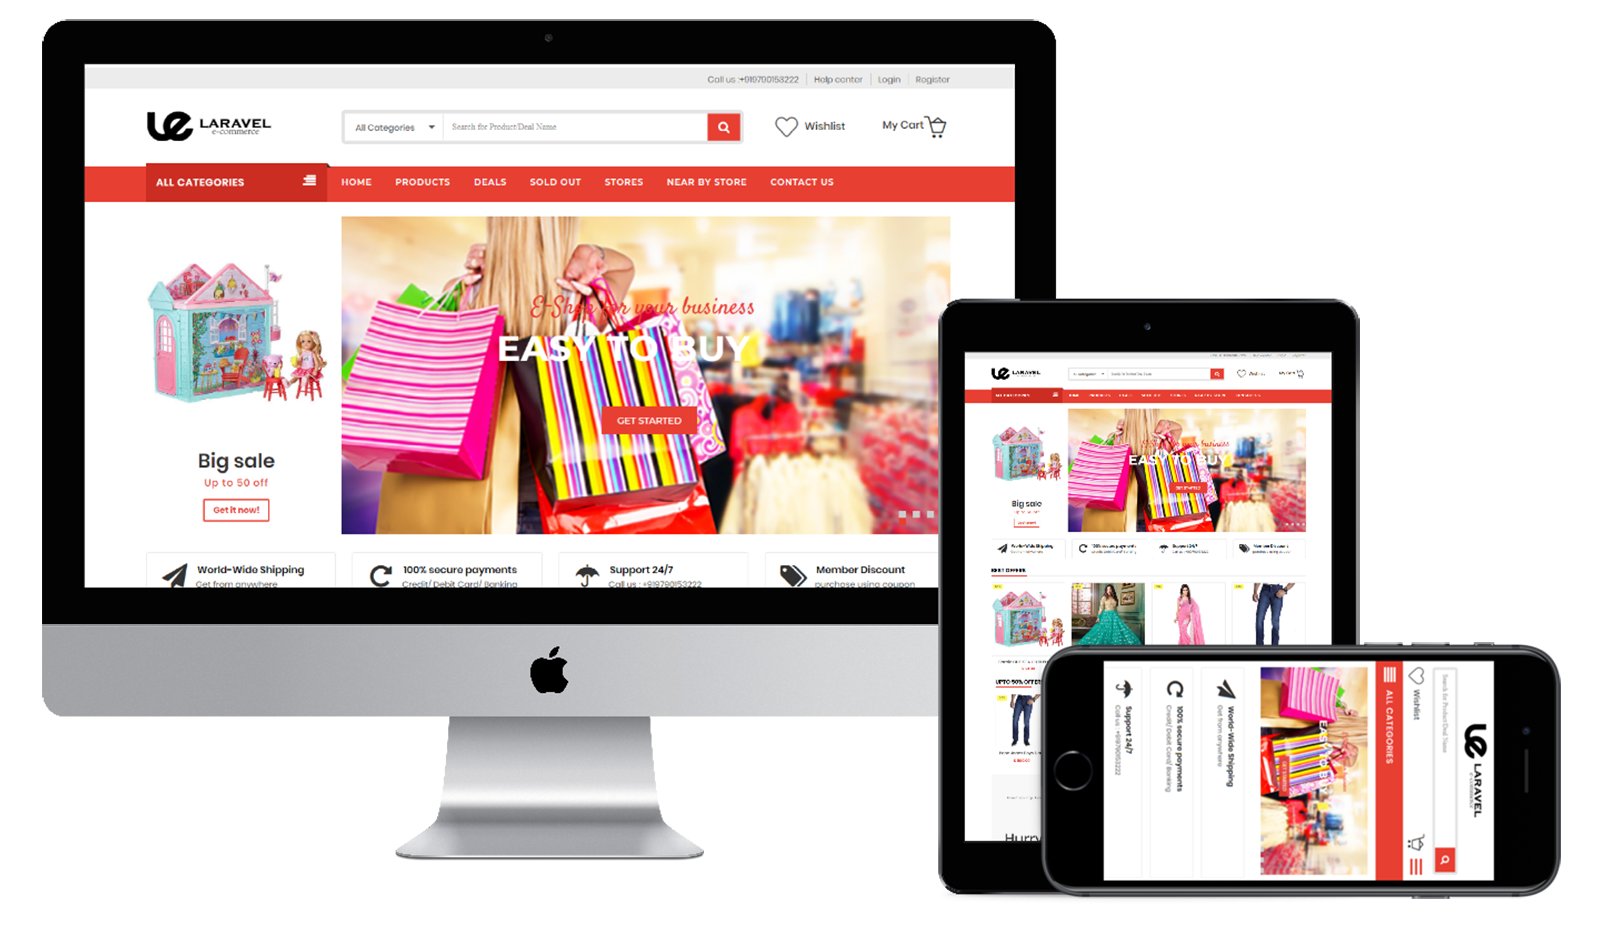 e-commerce website and digital marketing mobile development web development company in India, Uk, Dubai